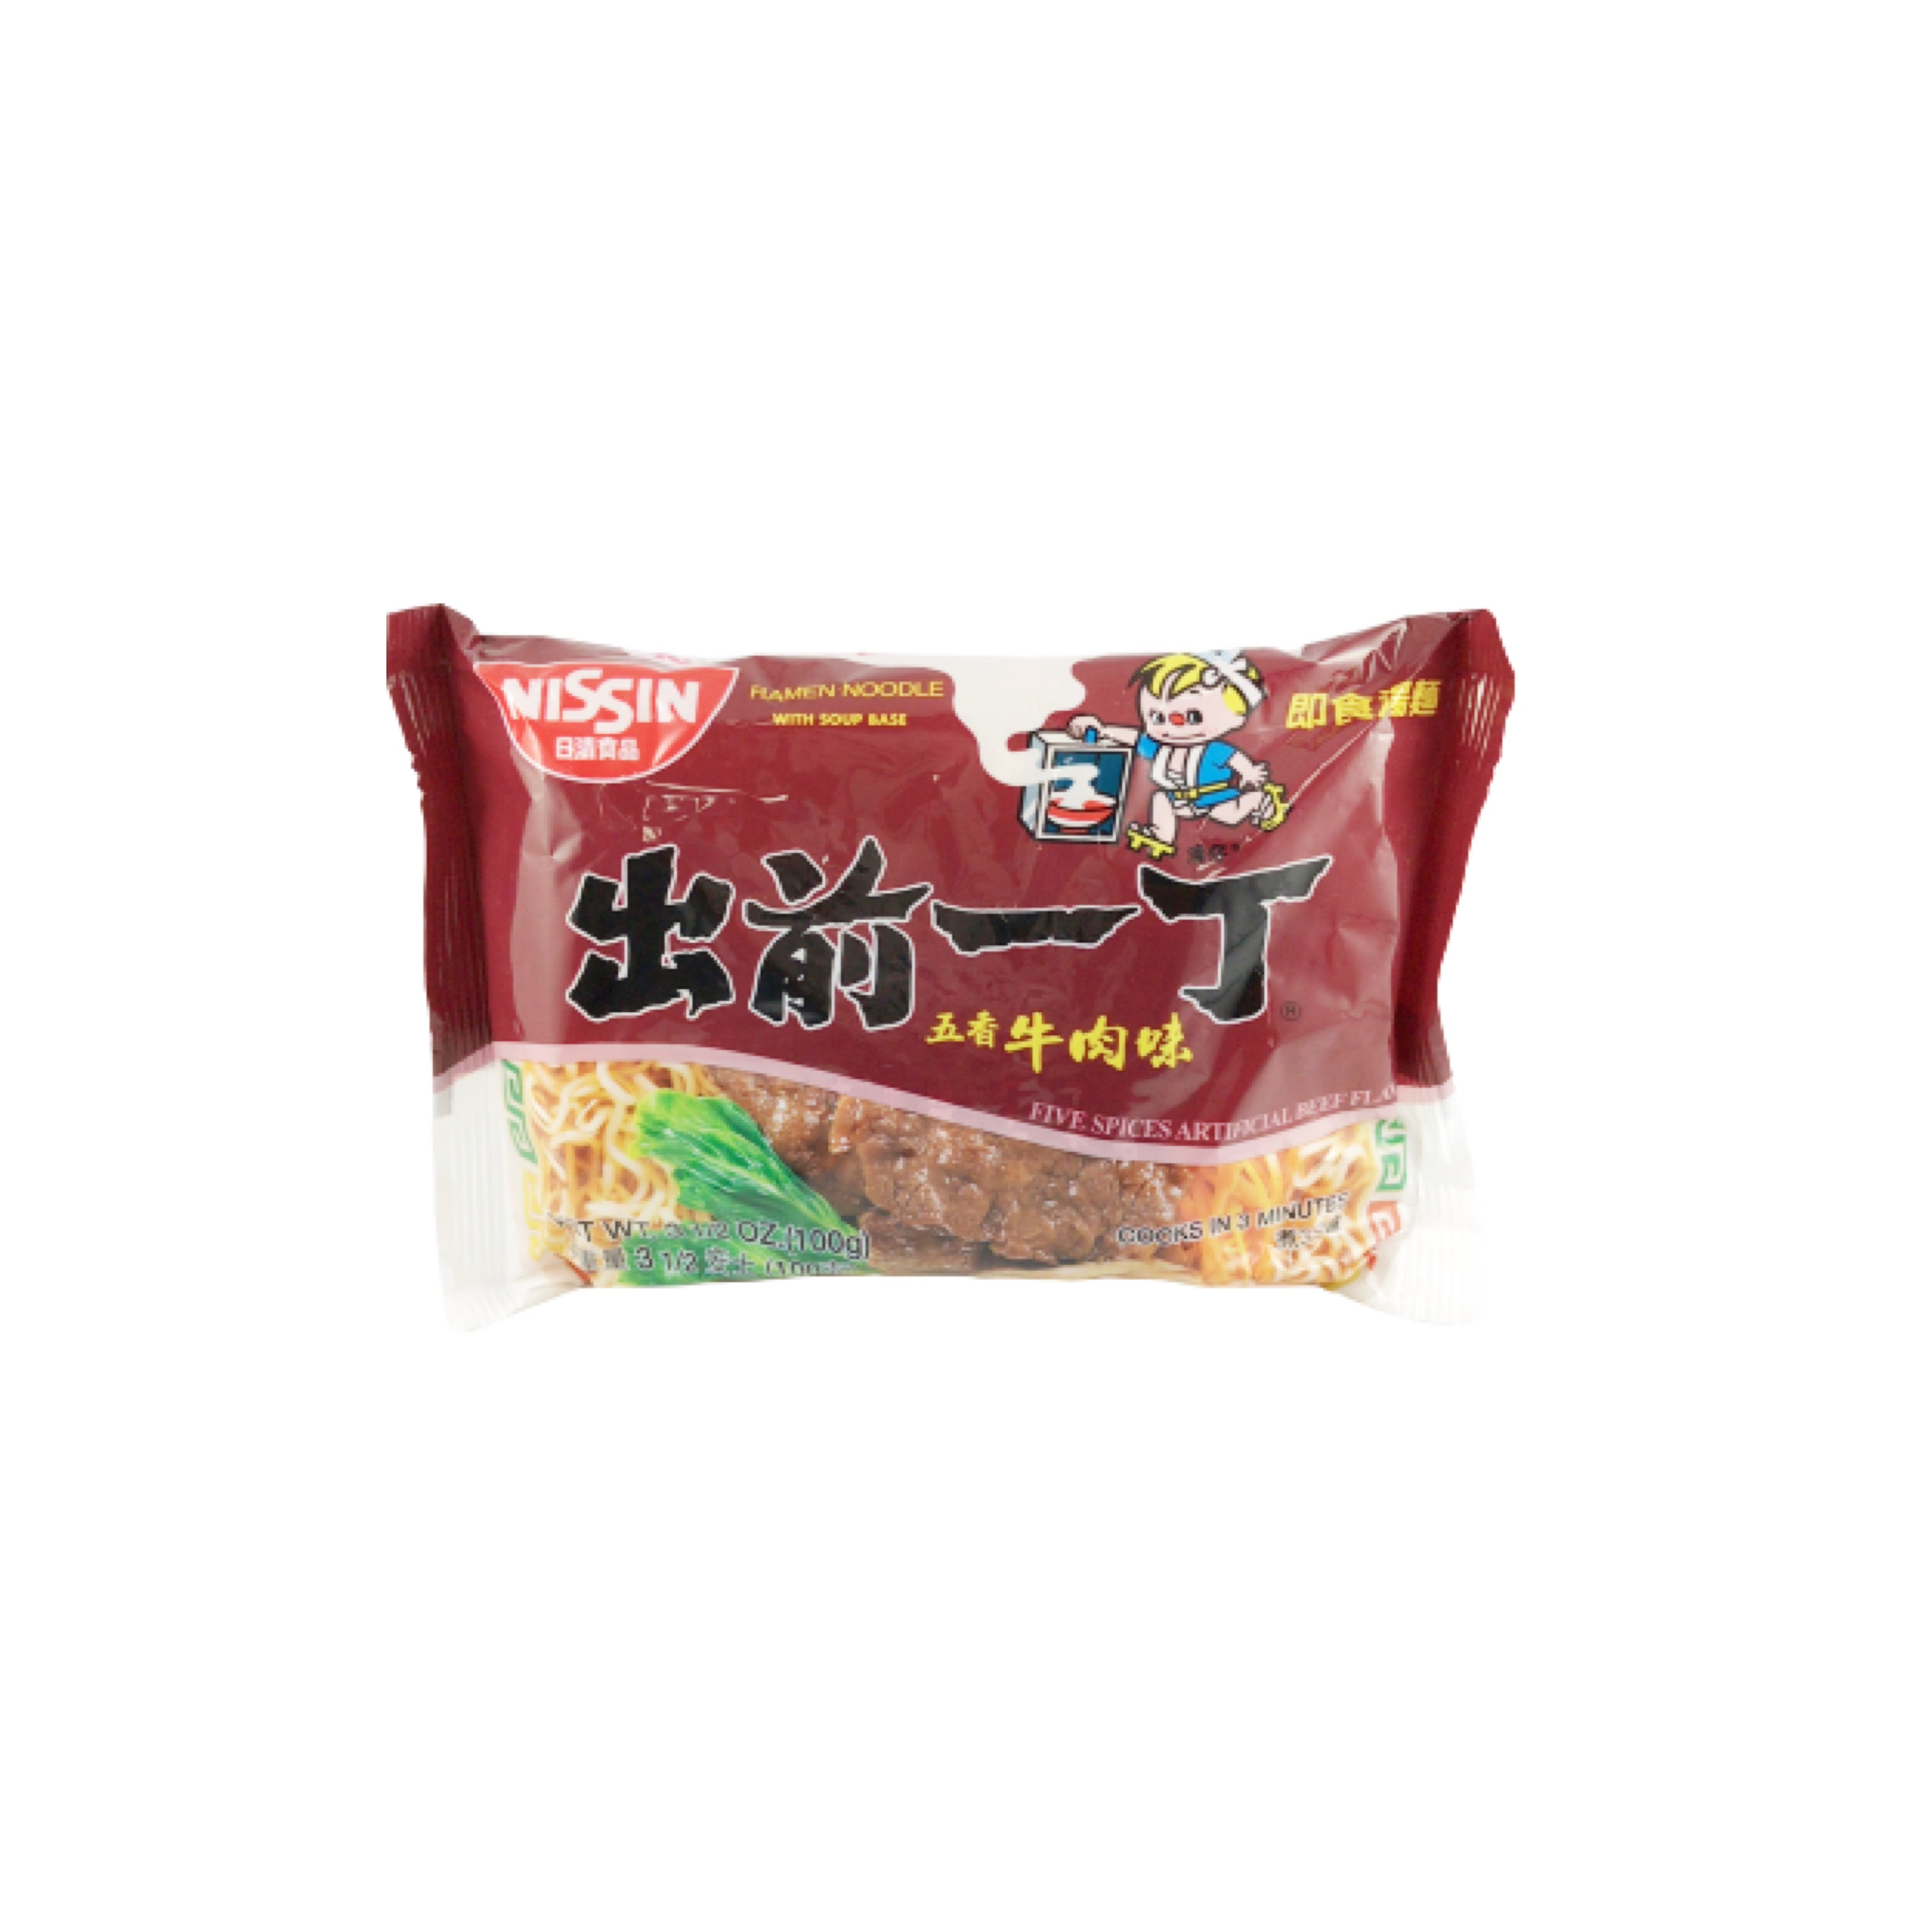 Nissin Demae Itcho Five Spices Beef Flavor Instant Noodle 出前一丁五香牛肉麺